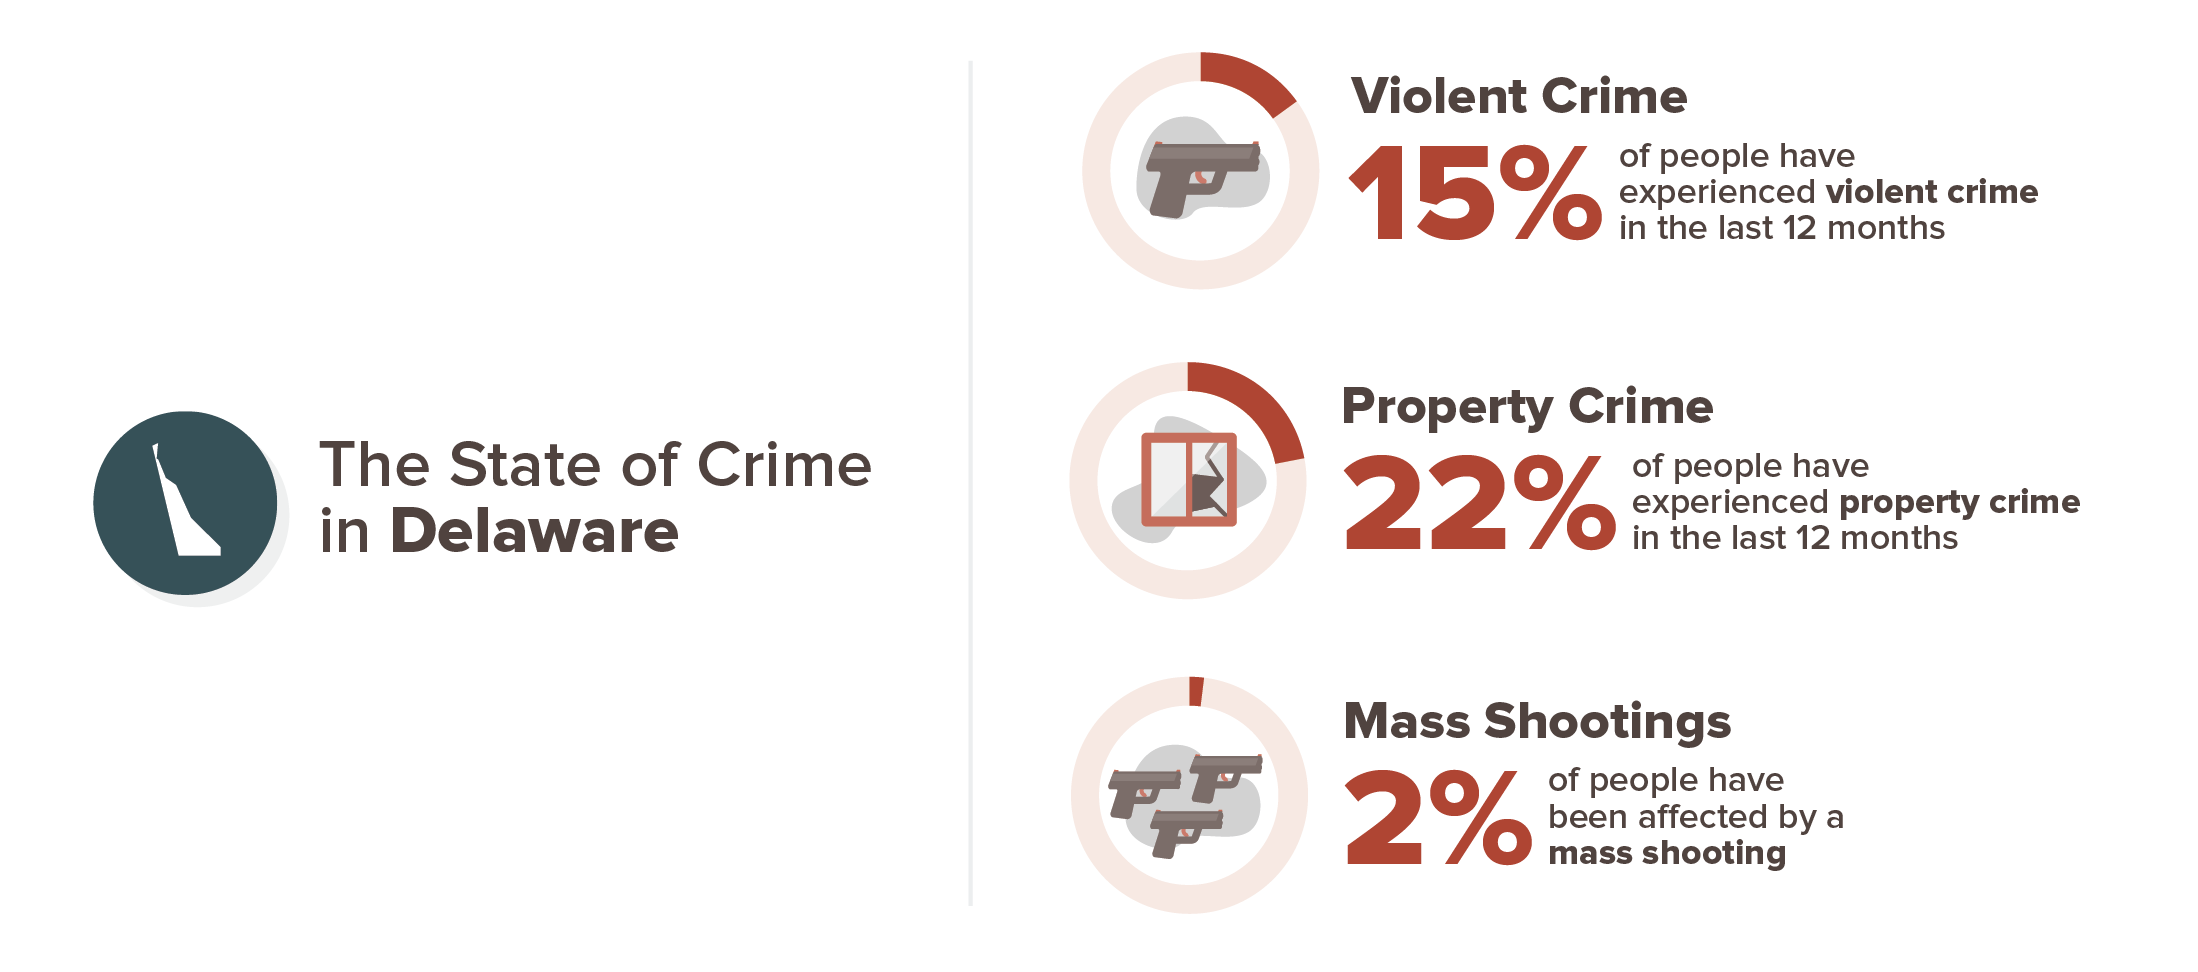 Delaware crime experience infographic; 15% violent crime, 22% property crime, 2% mass shooting